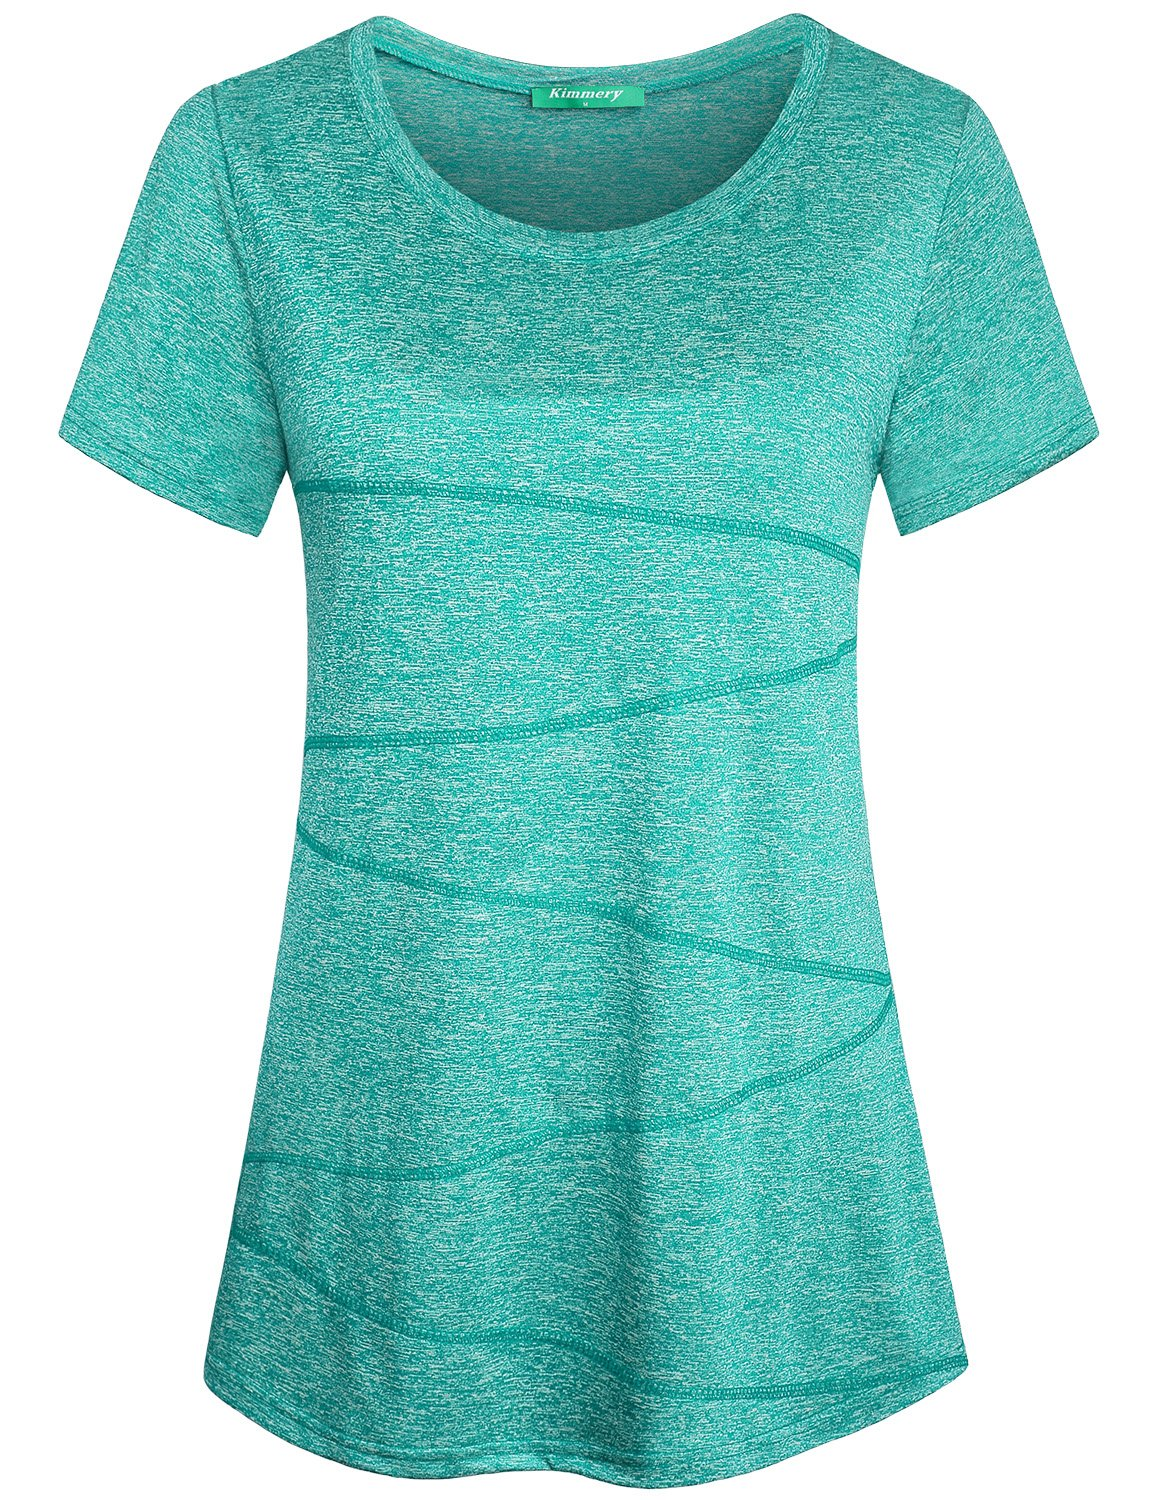 Kimmery Gym Shirts for Women Laides Casual Retro Style Jersey Yoga Tee Basic Daily Wear Short-Sleeved Tops Lightweight Comfortable Clothing Crew Neck Seamless Stitching Blouses Light Green Large